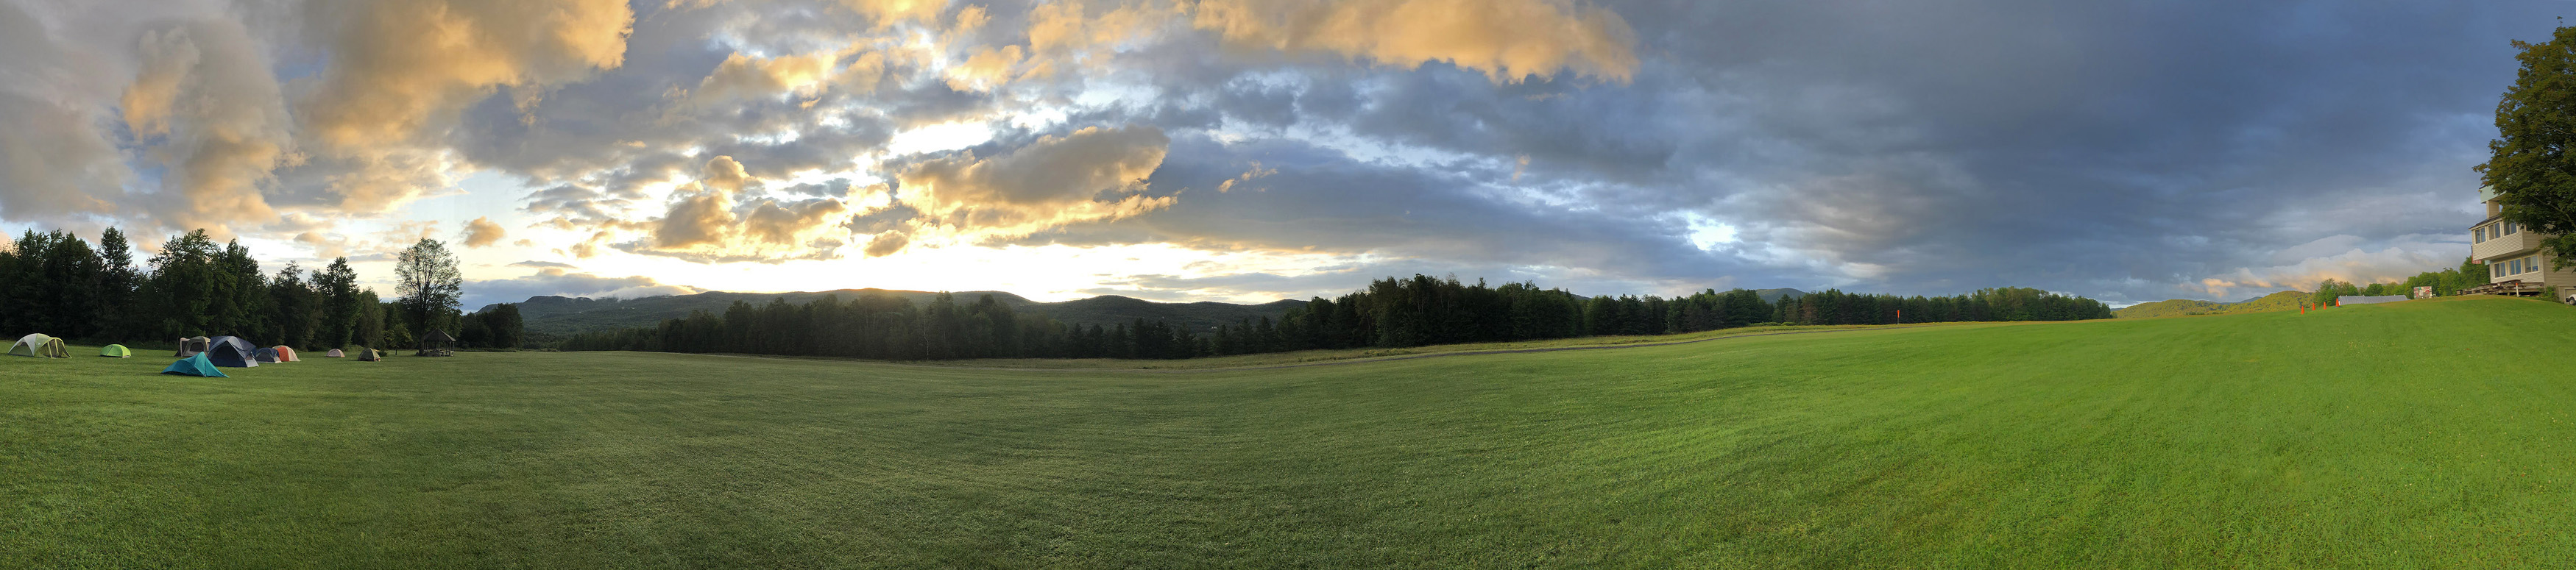 A splendid Vermont mountain panorama at Warren-Sugarbush Airport delighted soaring camper Lauren Tulis, who spent a week tent-camping in a park-like setting. Photo by Lauren Tulis.